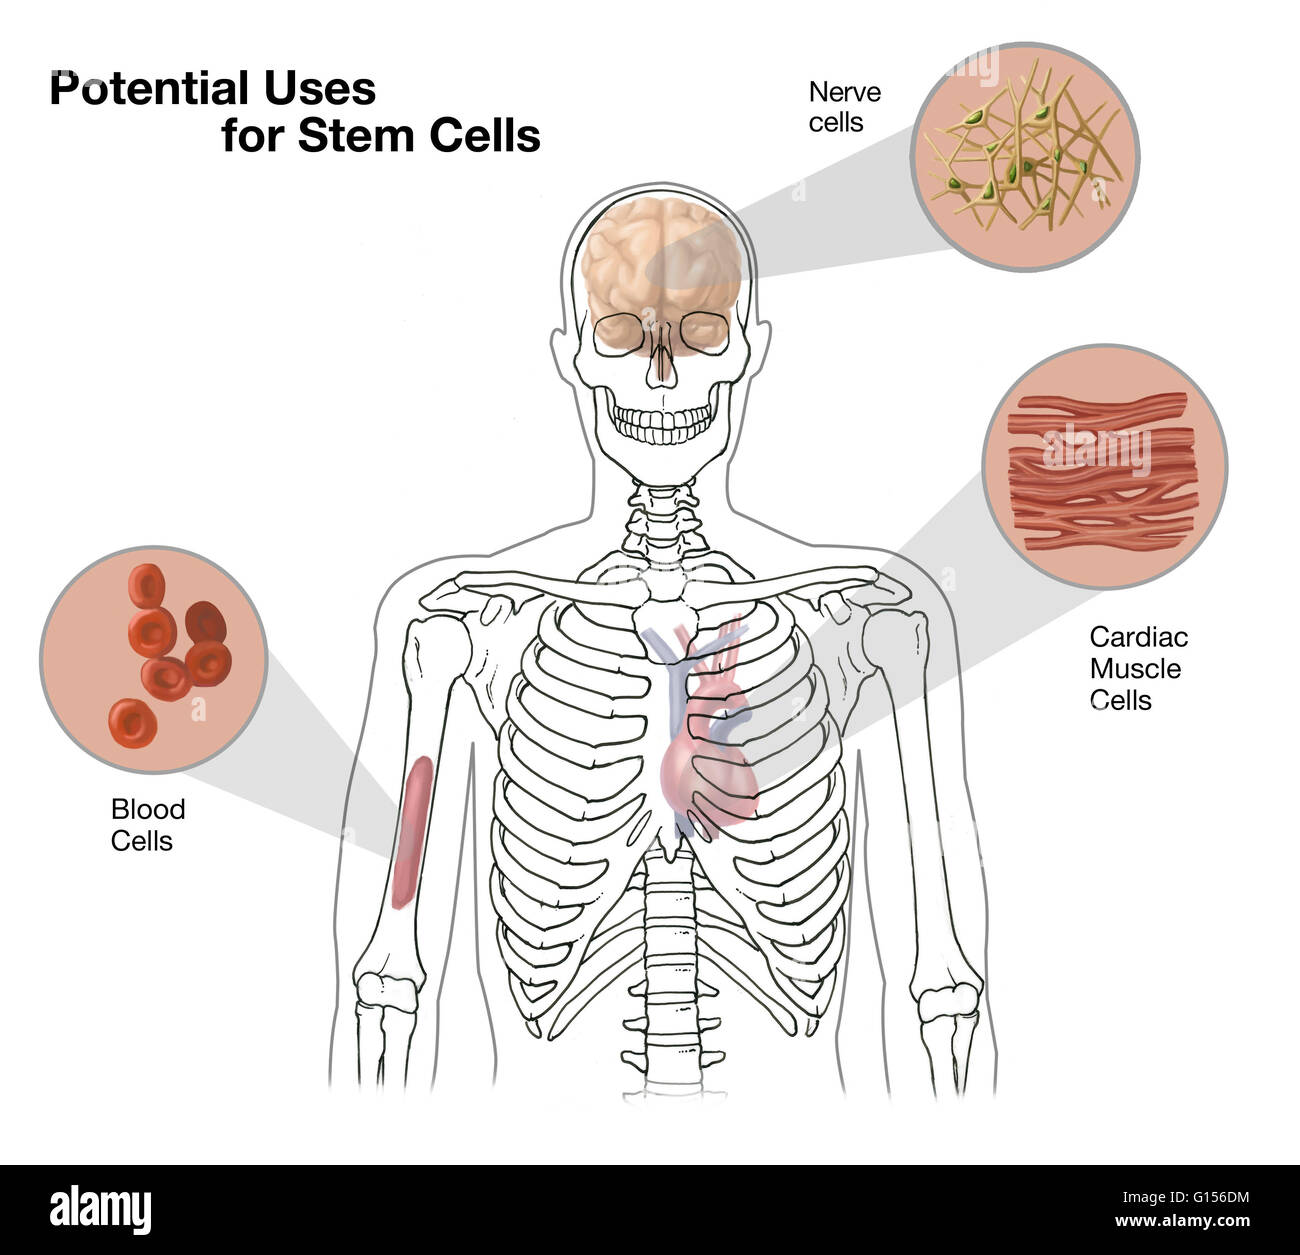 Annotated Brain Stock Photos Images Alamy This Diagram Shows The Muscles In Heart Showing Potential Uses For Stem Cells To Replace Or Replenish Damaged Other